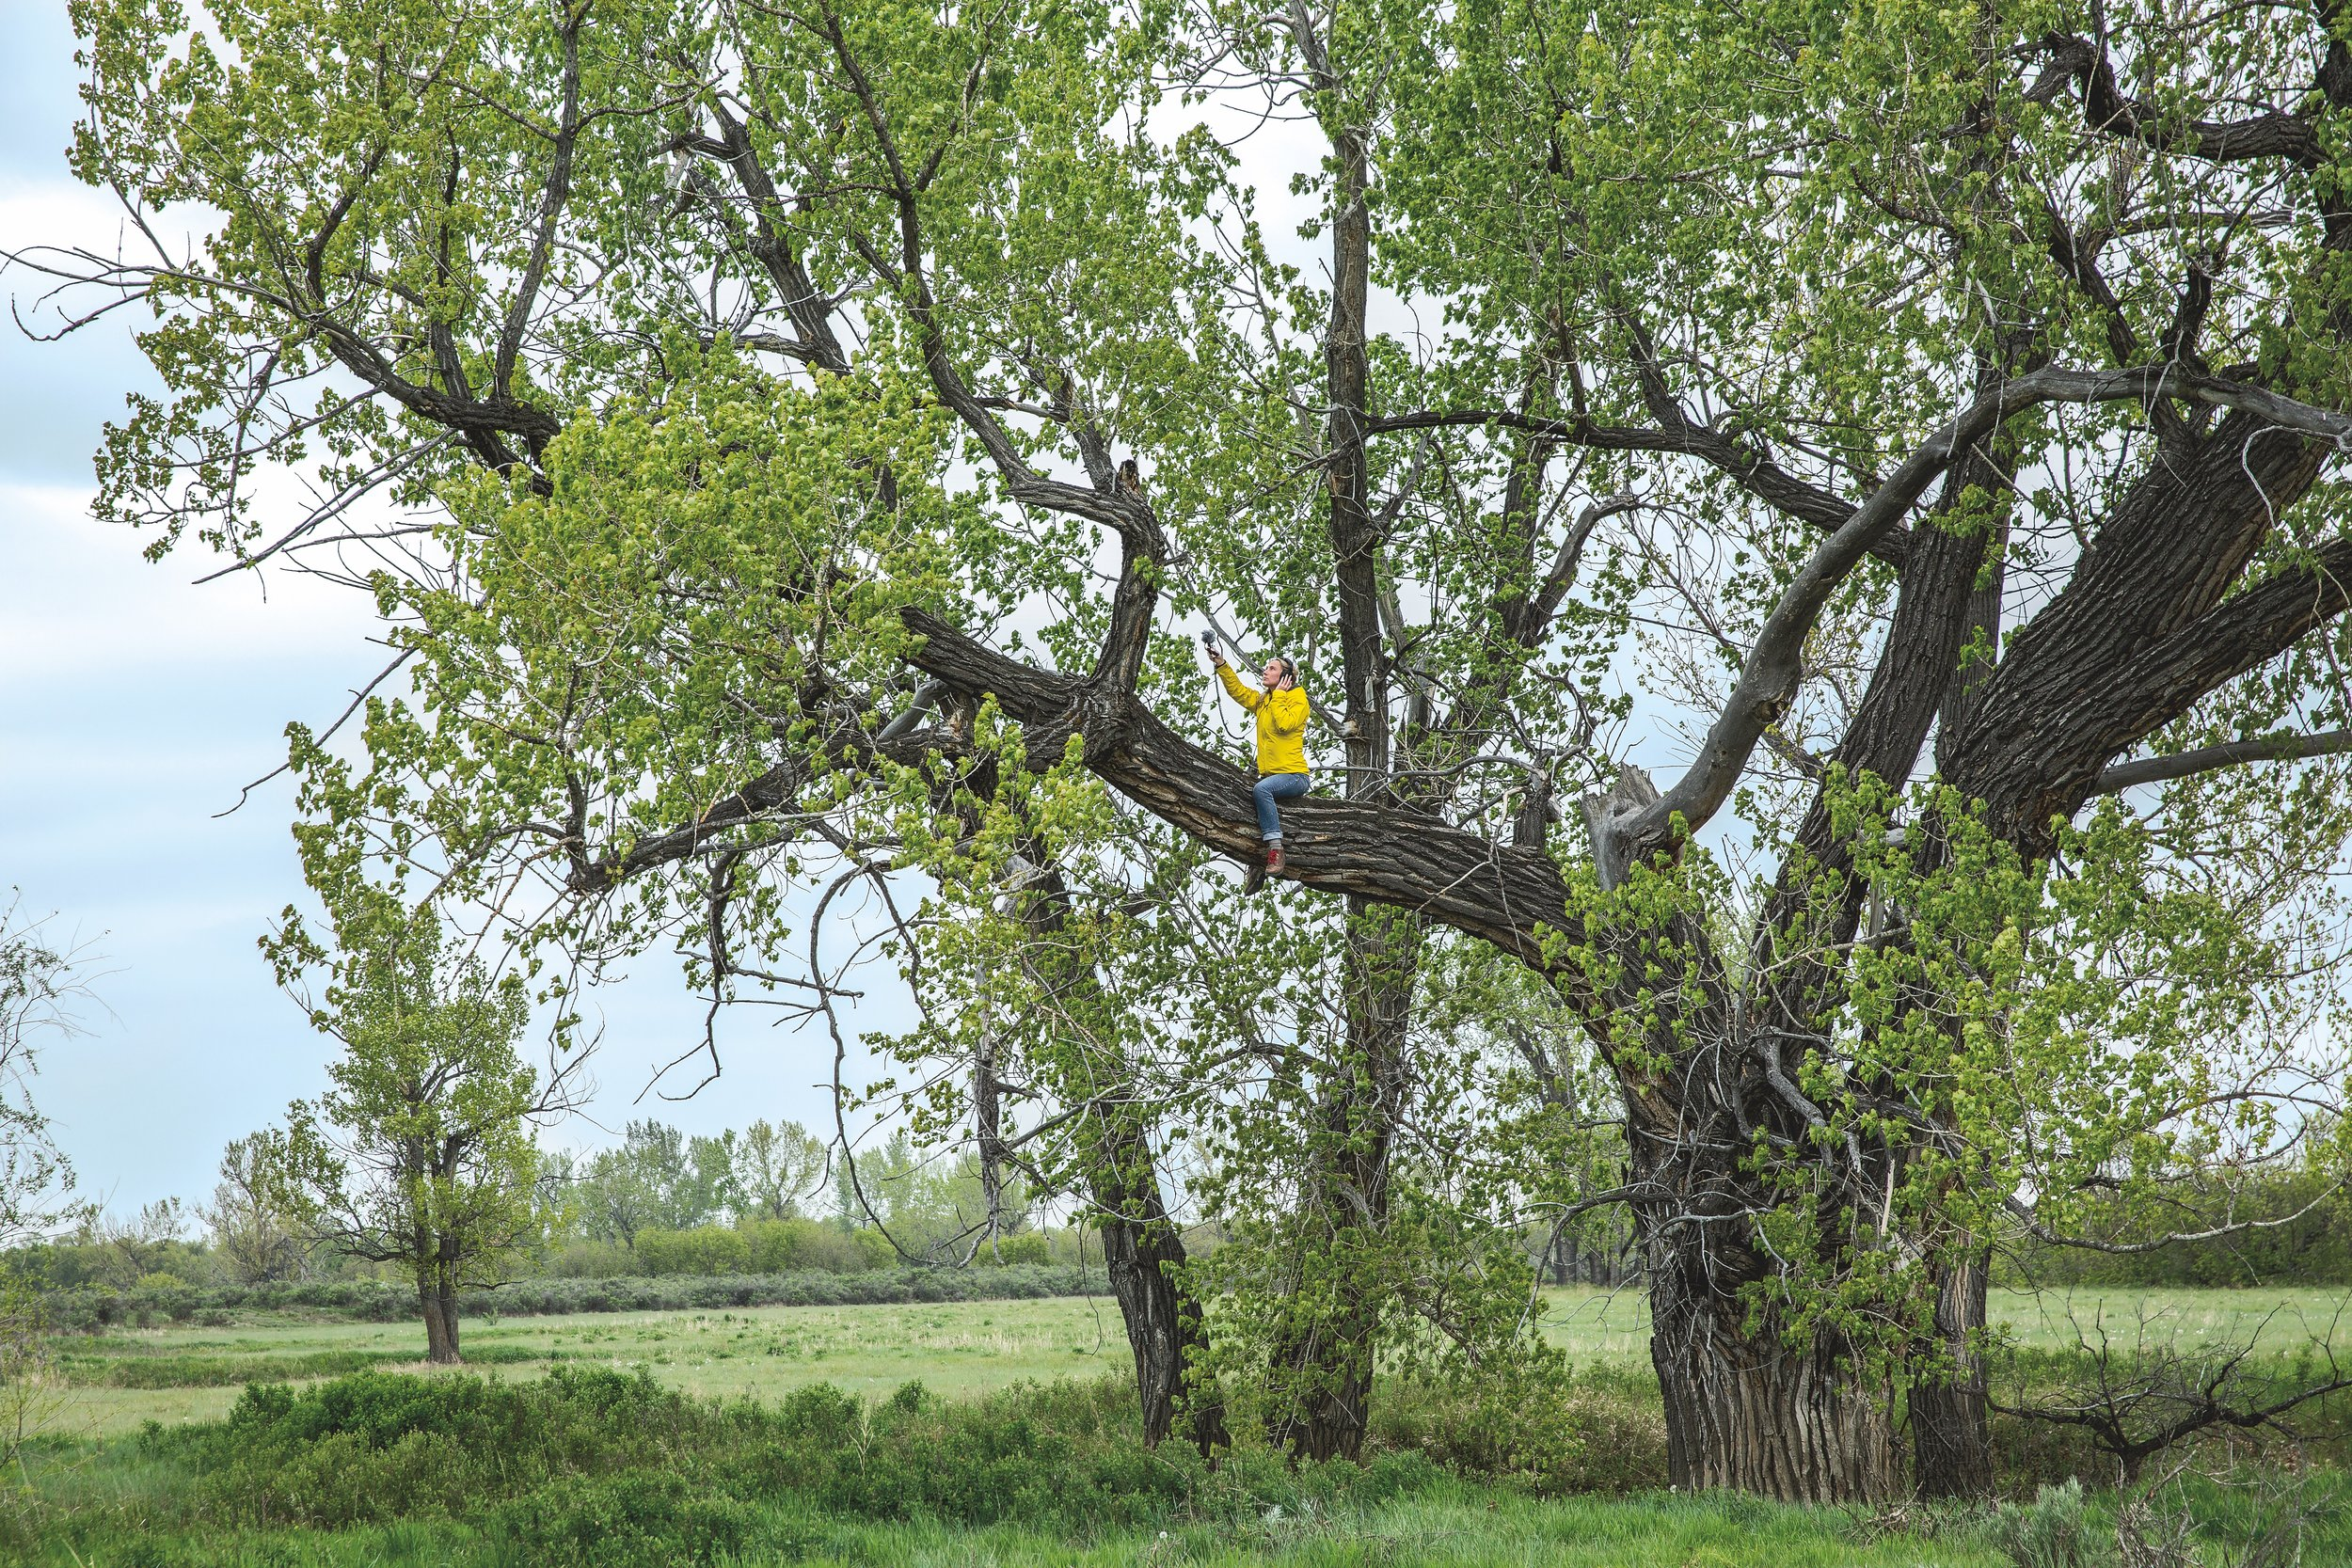 Composer Jessica Kilroy goes out on a limb to record wind in the cottonwoods. American Prairie Reserve, North Central Montana.Photo credit to Lee Cohen